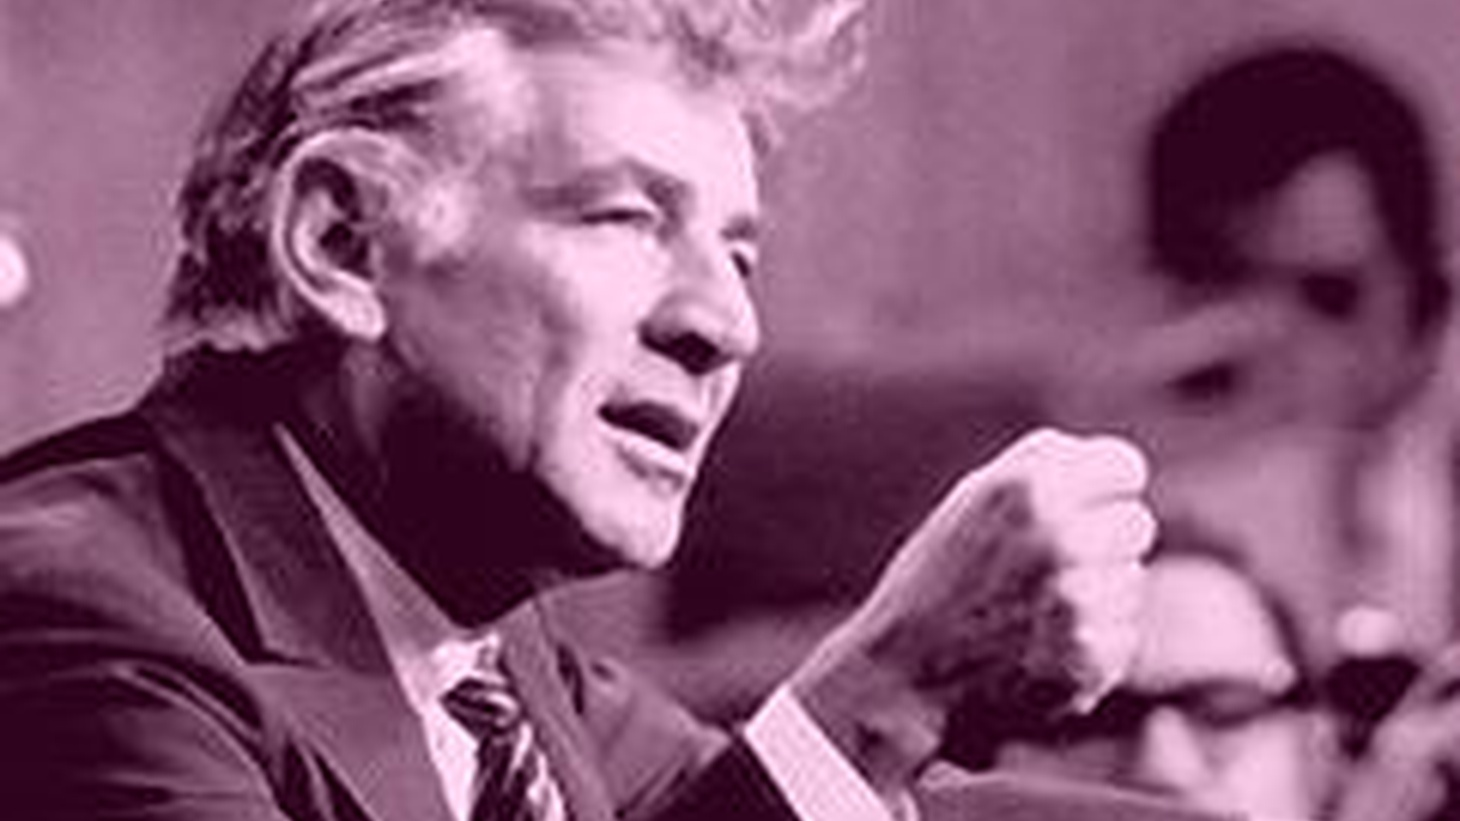 This groundbreaking 11-hour documentary series illuminates the life and work of musical titan Leonard Bernstein,